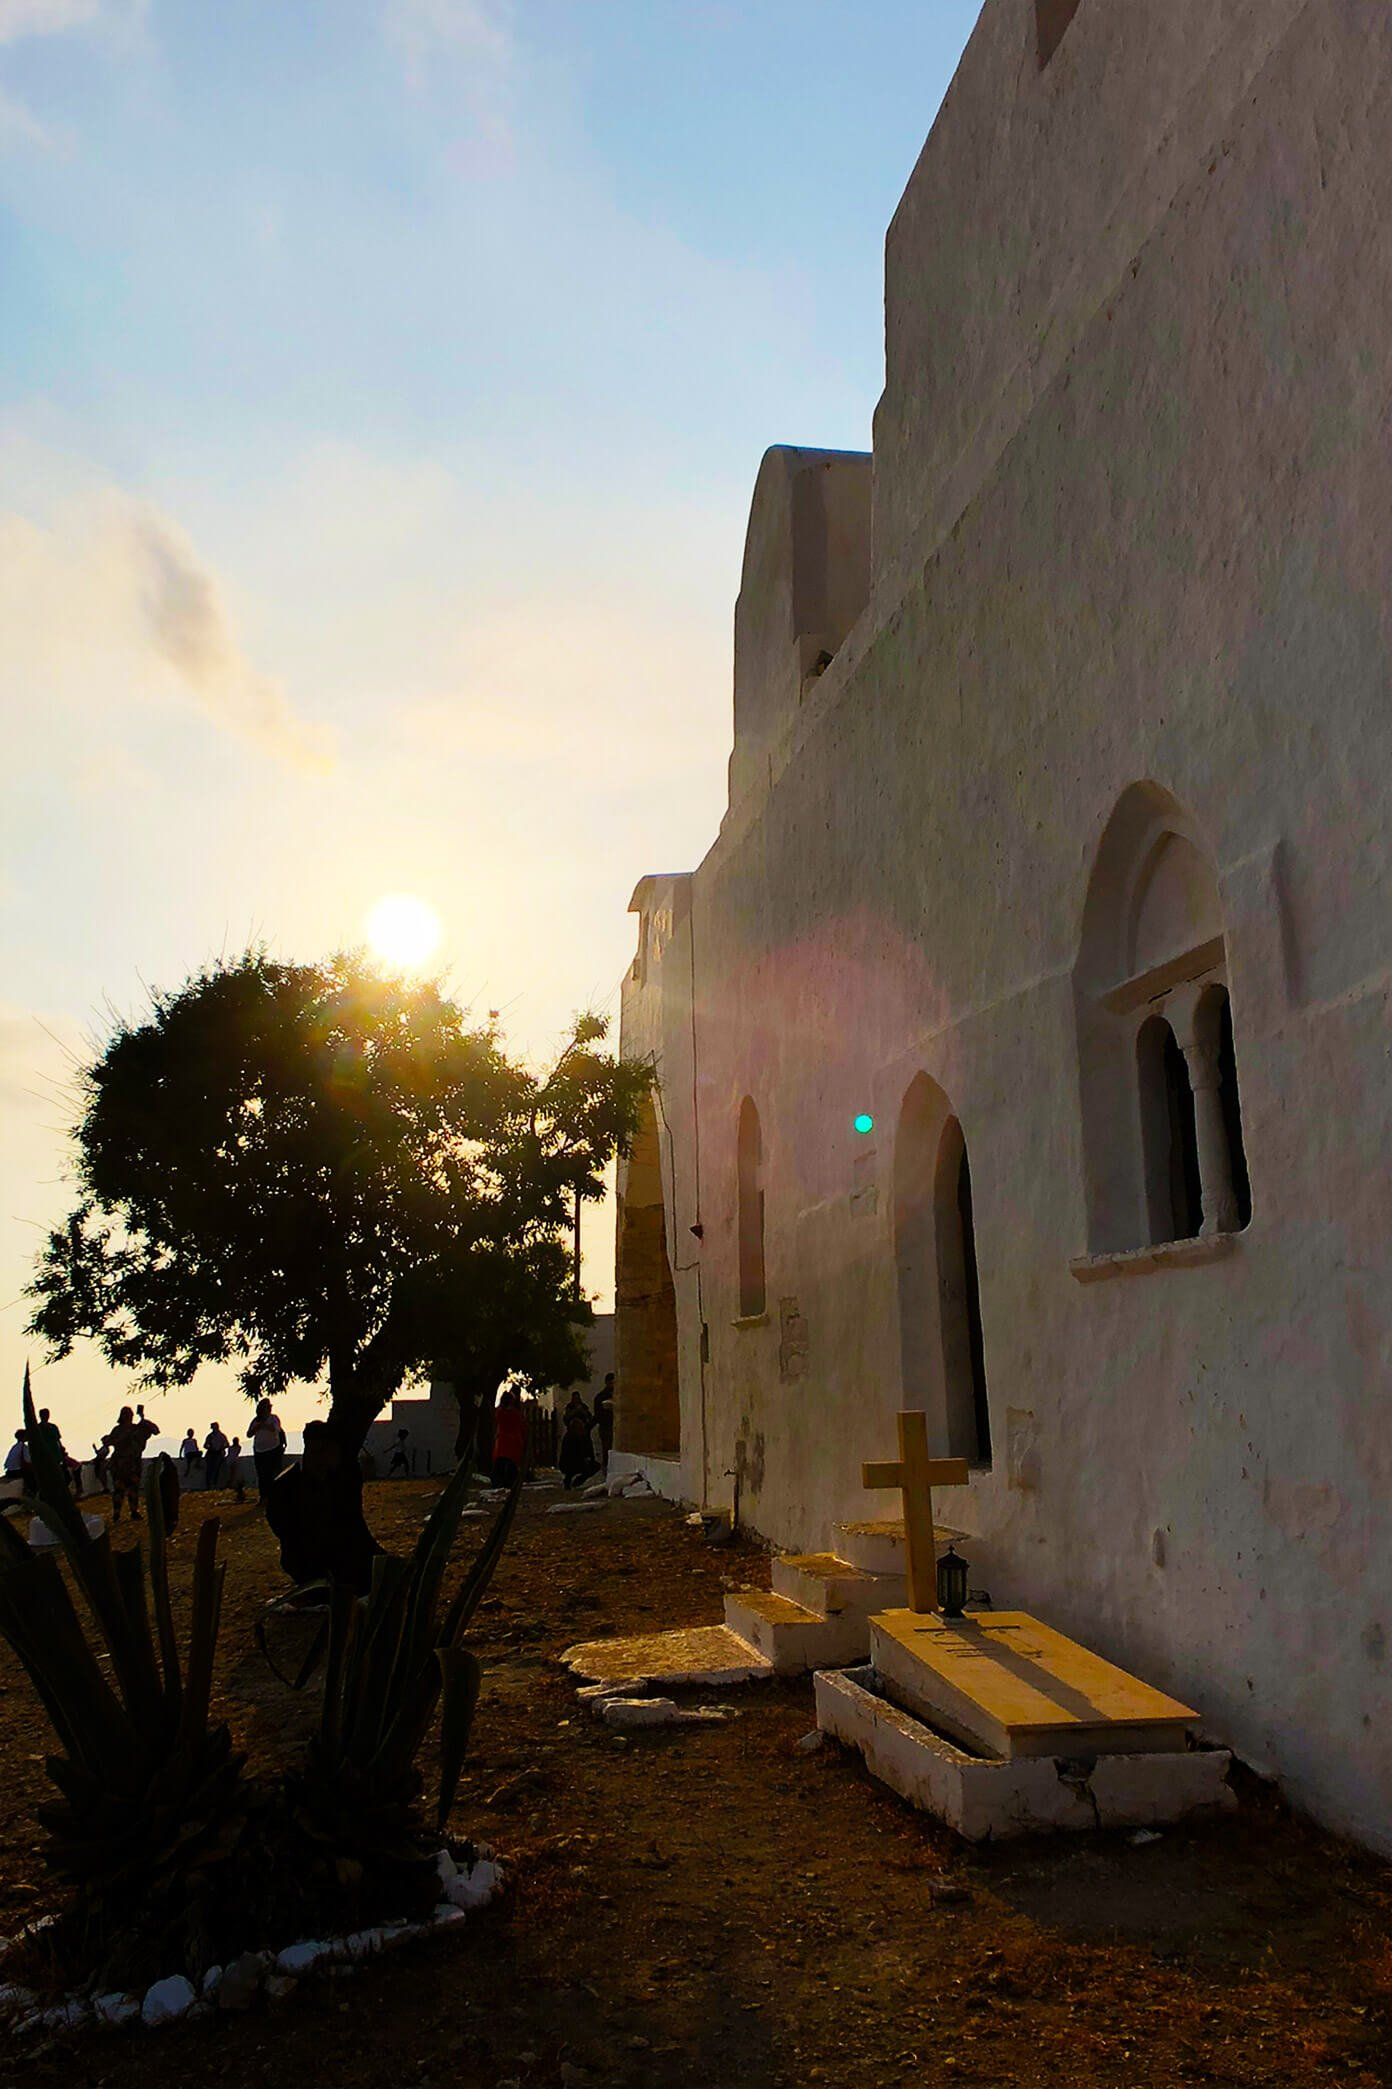 Sunset Church Views in Folegandros, Greece